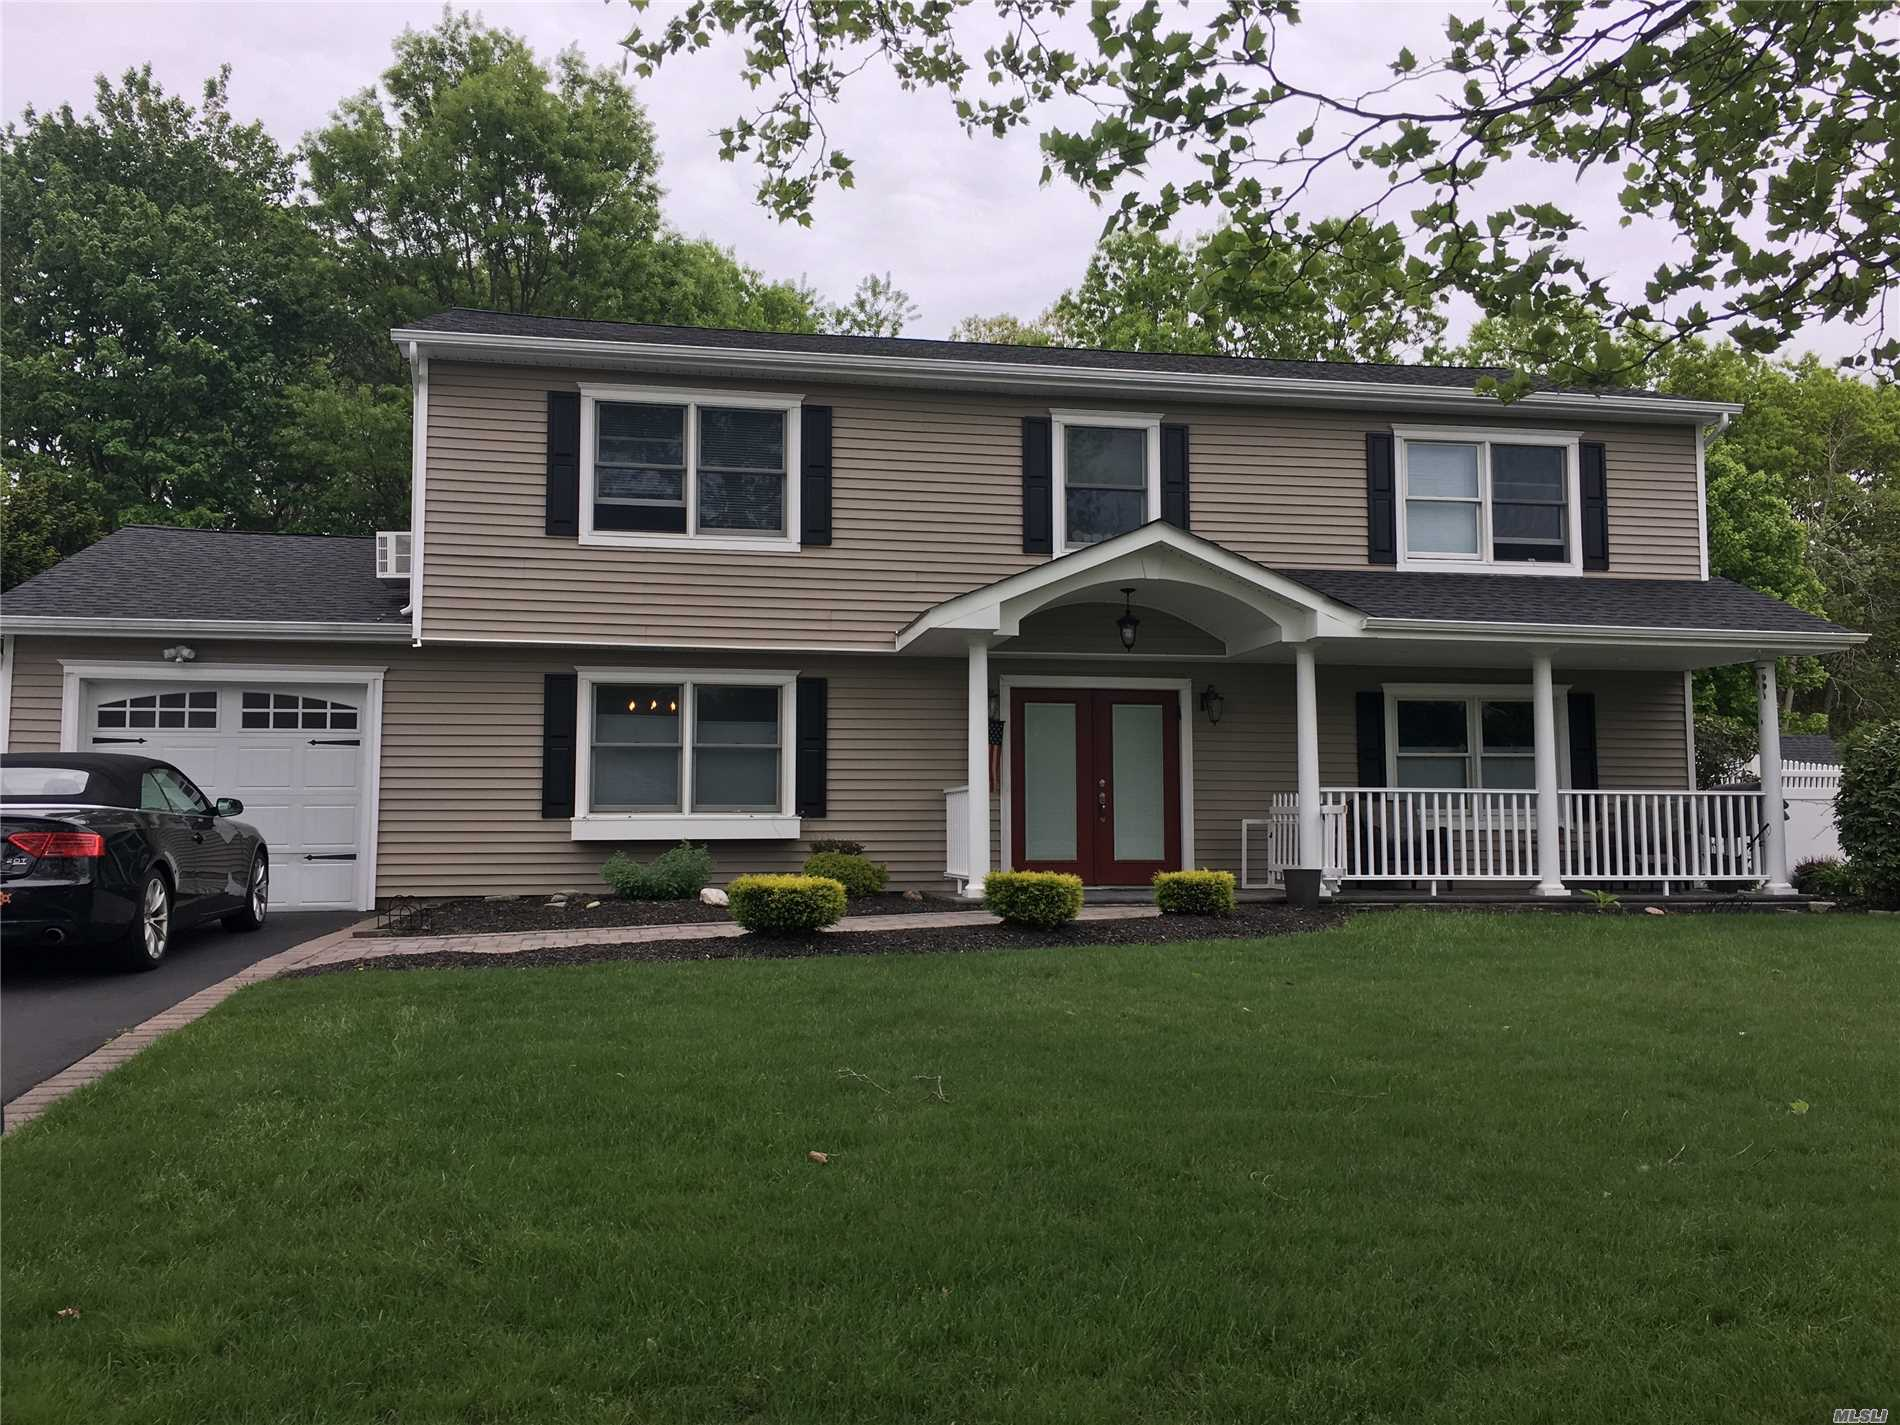 14 Long Meadow Pl - S. Setauket, New York